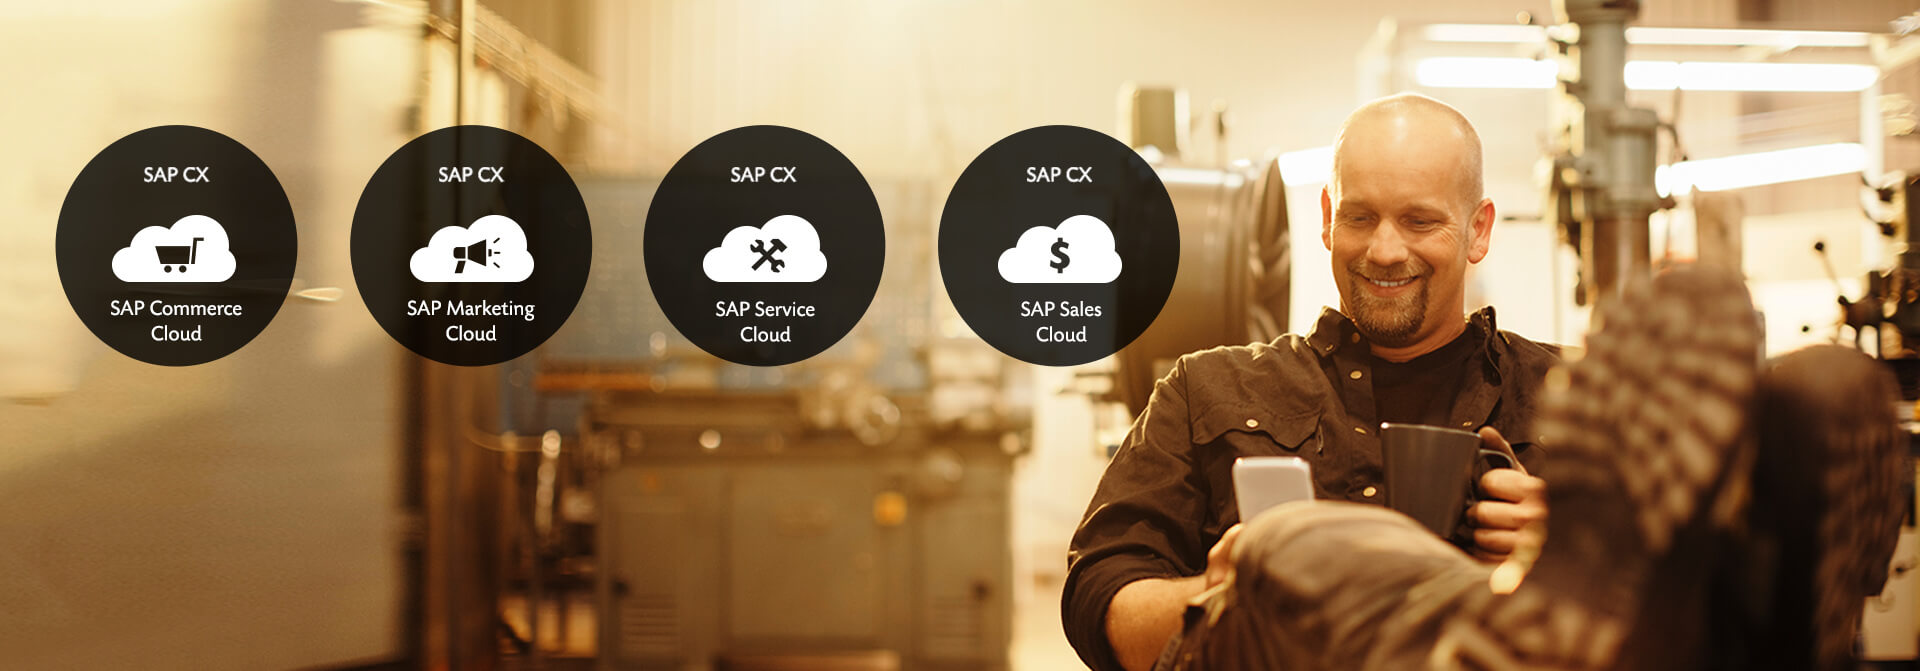 SAP Customer Experience